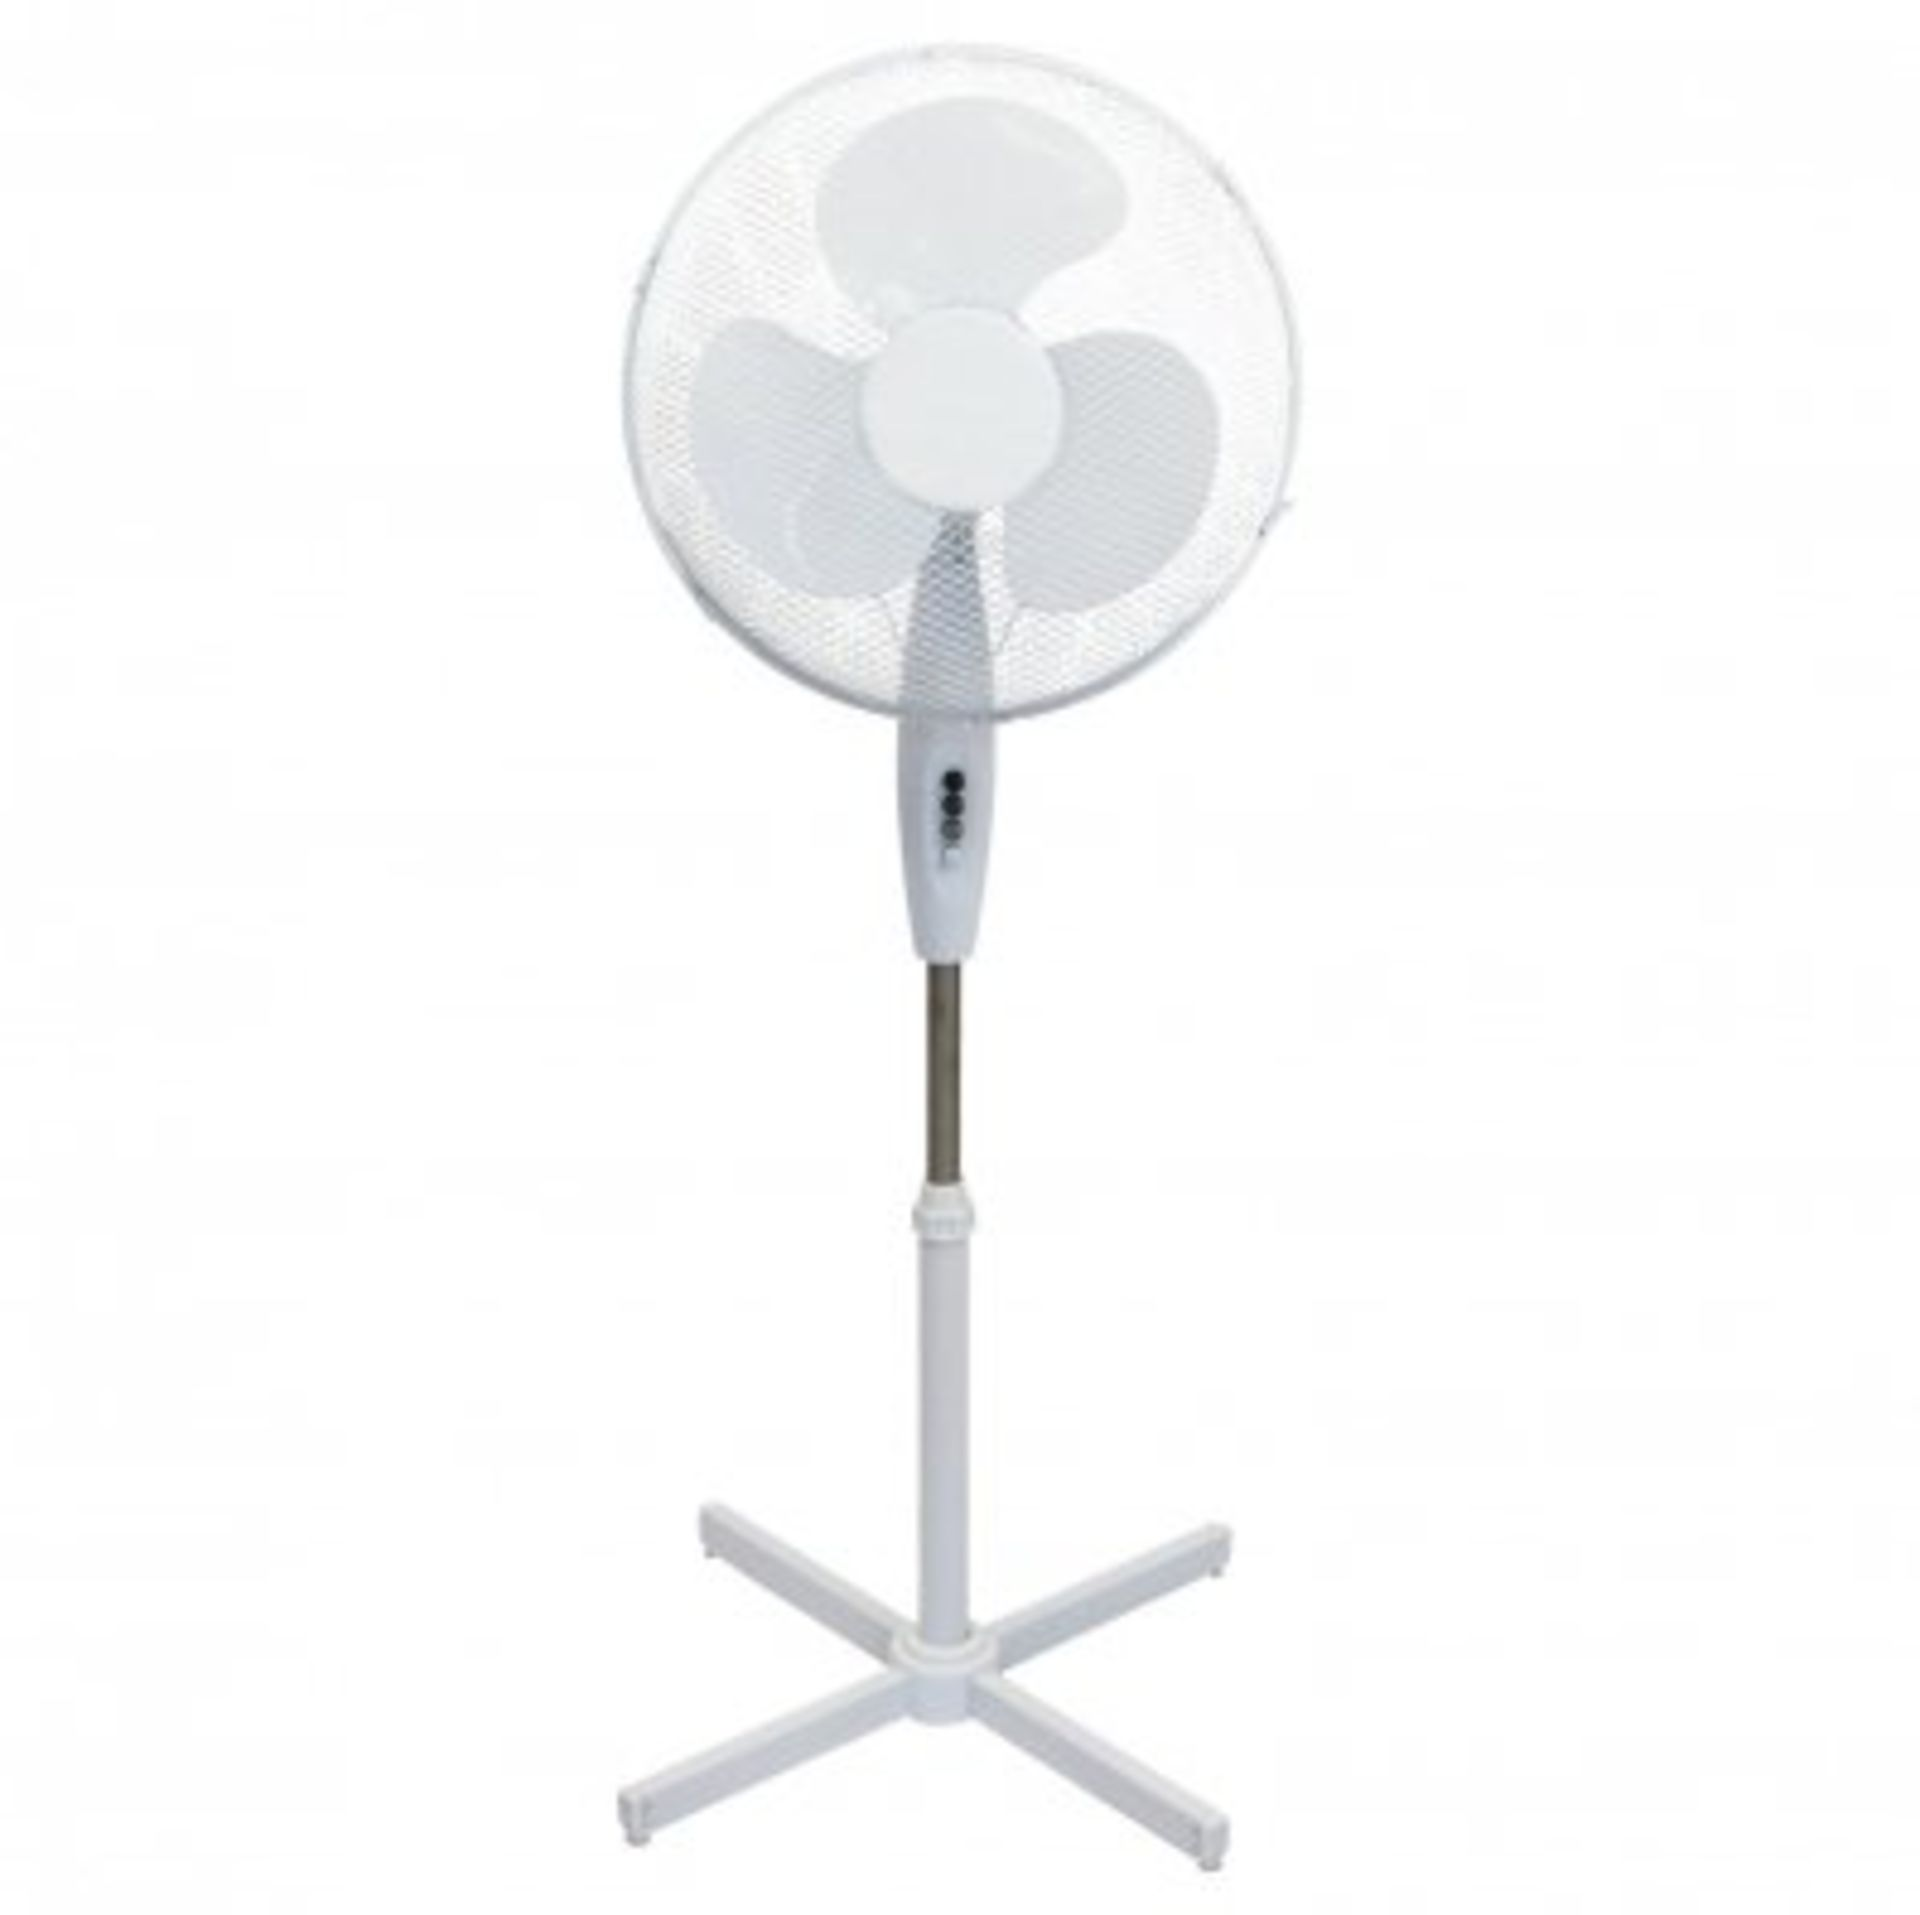 "Lot 6 - (RU2) 16"" Oscillating Pedestal Electric Fan The fan head oscillates and tilts which mea..."